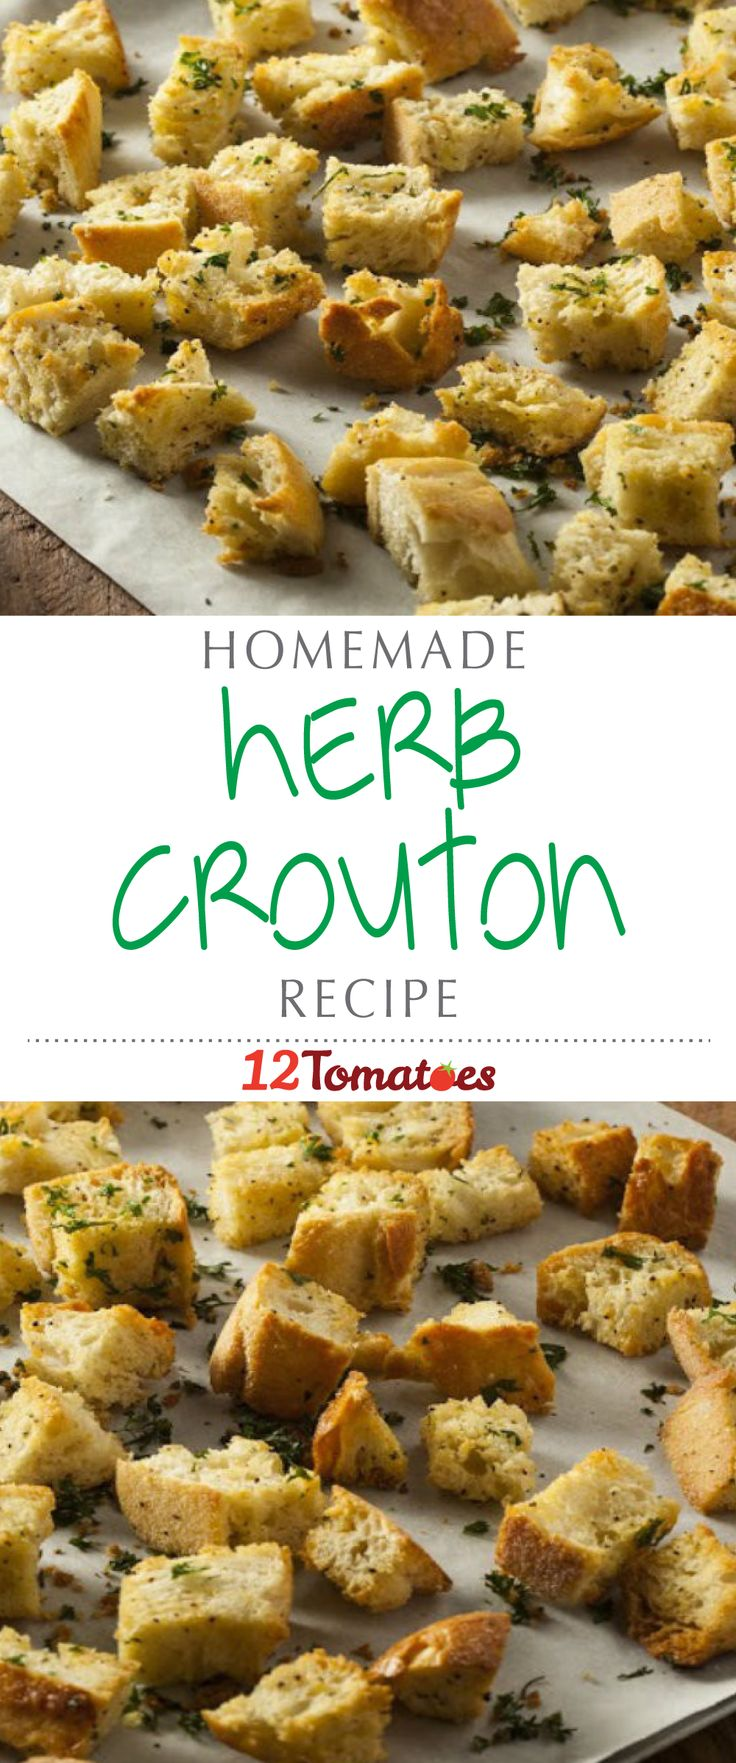 Homemade Croutons | These crispy bites add a delightful crunch and texture to your favorite soups and salads, and they use day-old French bread, which is a great use of leftover bread from dinner.